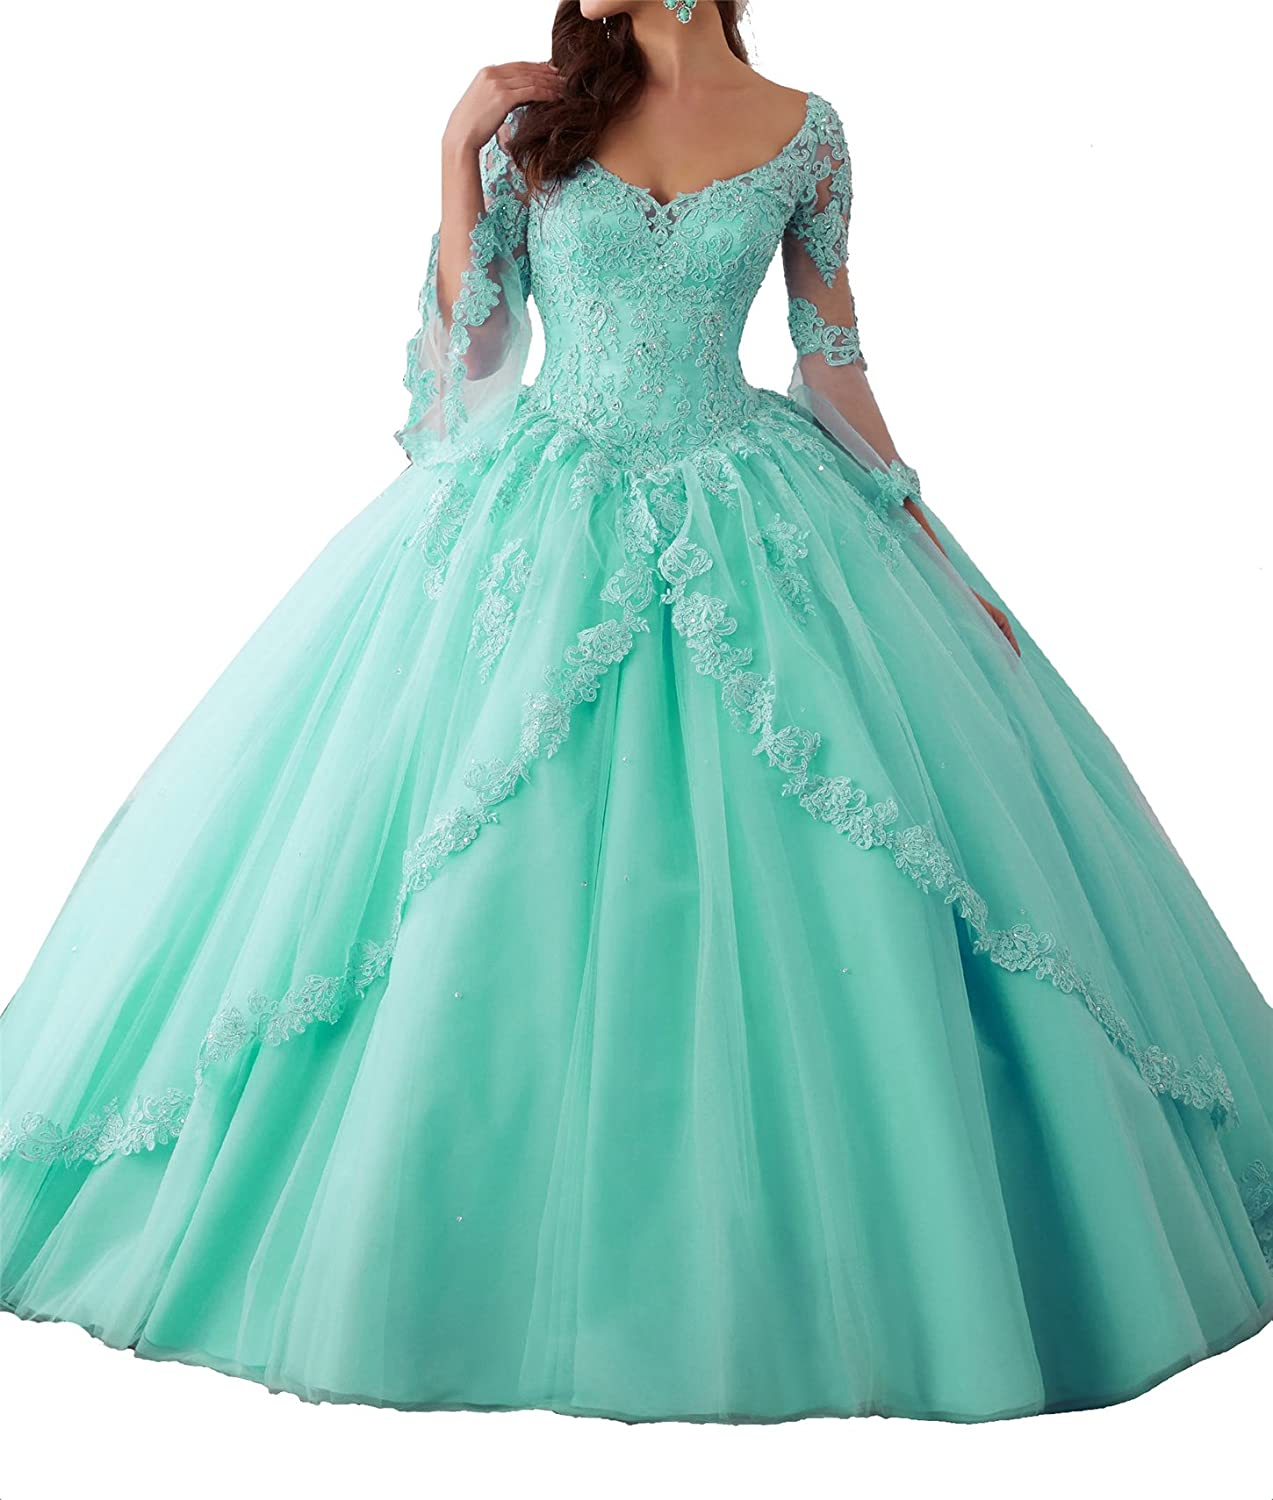 TuanYuan Women Lace Long Sleeves Girls Quinceanera Dresses VNeck Ball Gowns